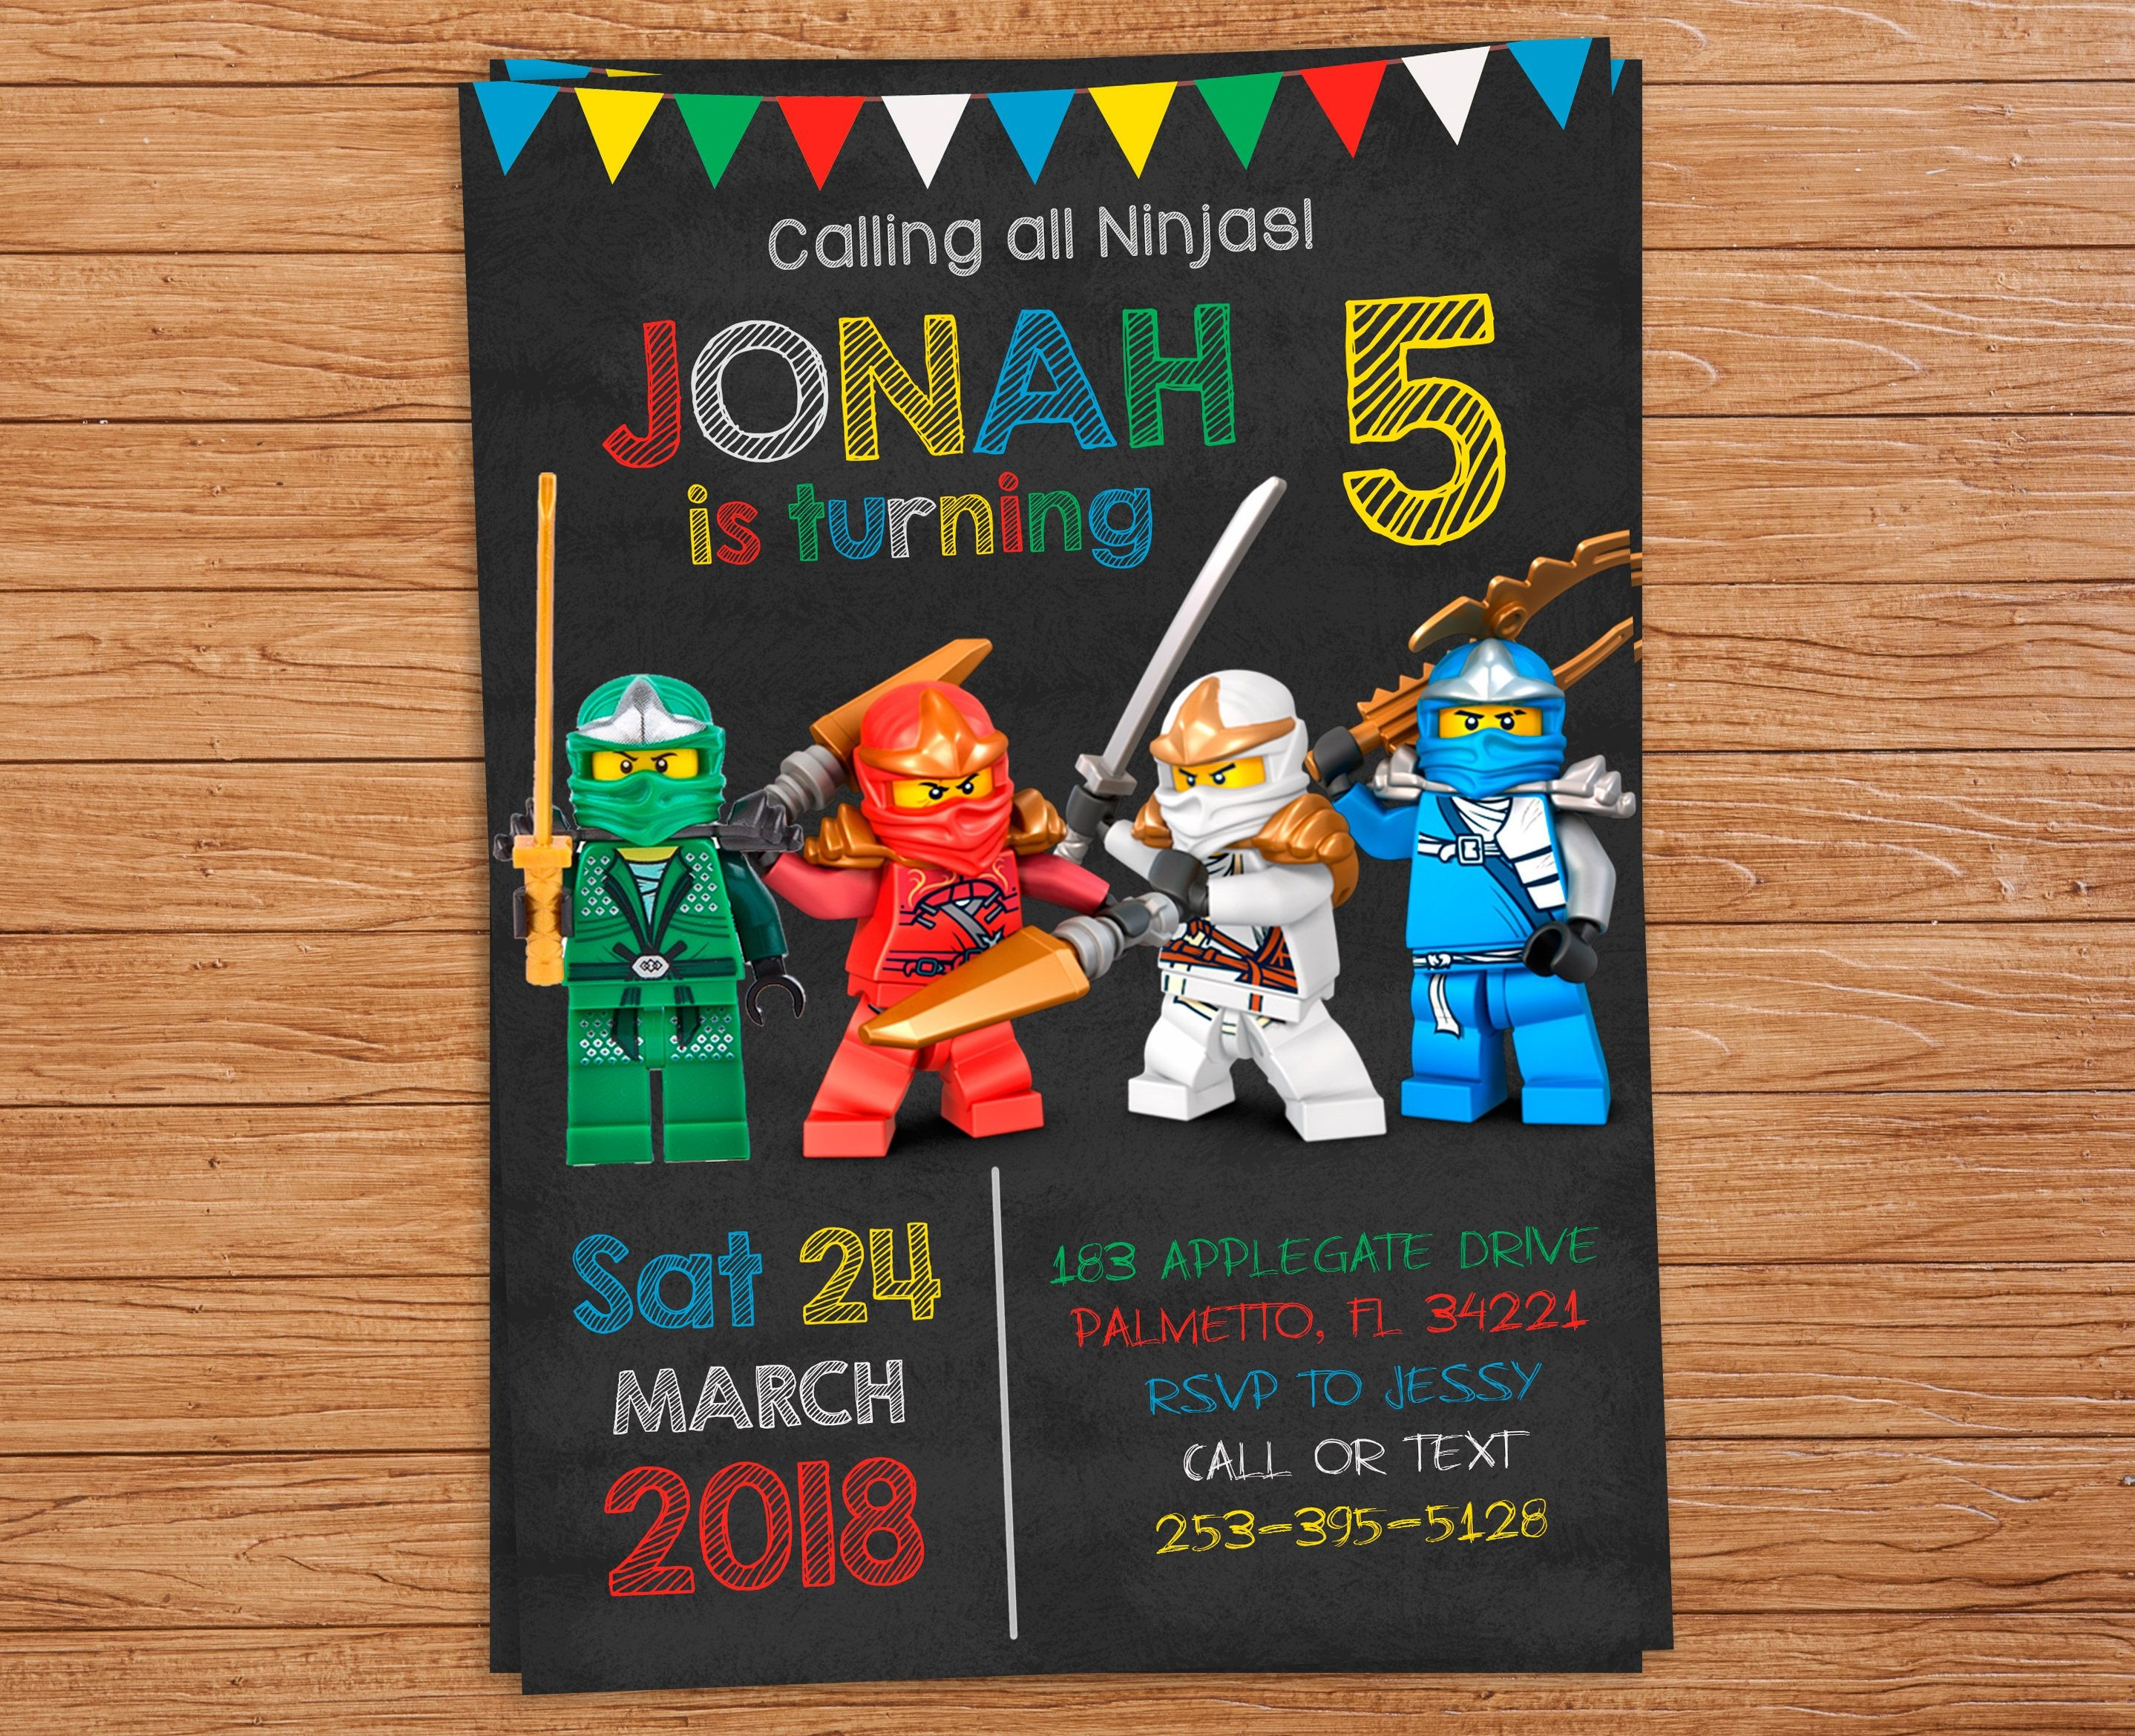 Pinlindsey Hicks On Wesley's 6Th Birthday | Ninjago Party, Ninja - Lego Ninjago Party Invitations Printable Free